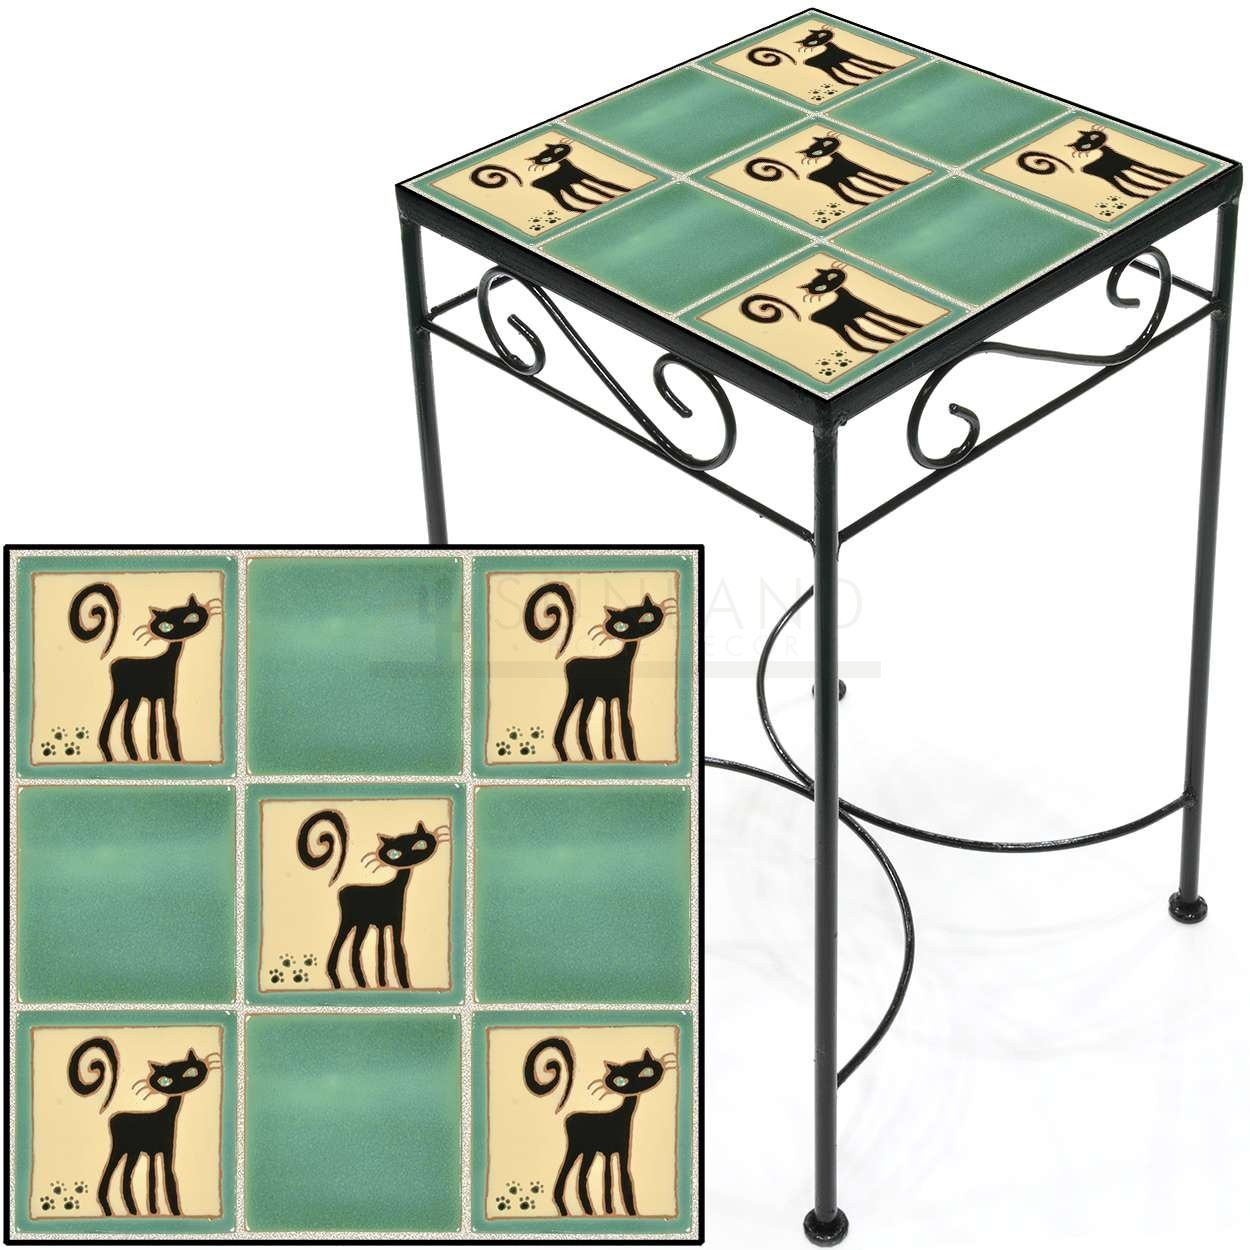 tile accent table black cats jade tall square save metal and small kitchen chairs ikea childrens storage boxes inn ceramic end stool hardwood floor threshold oak tables with